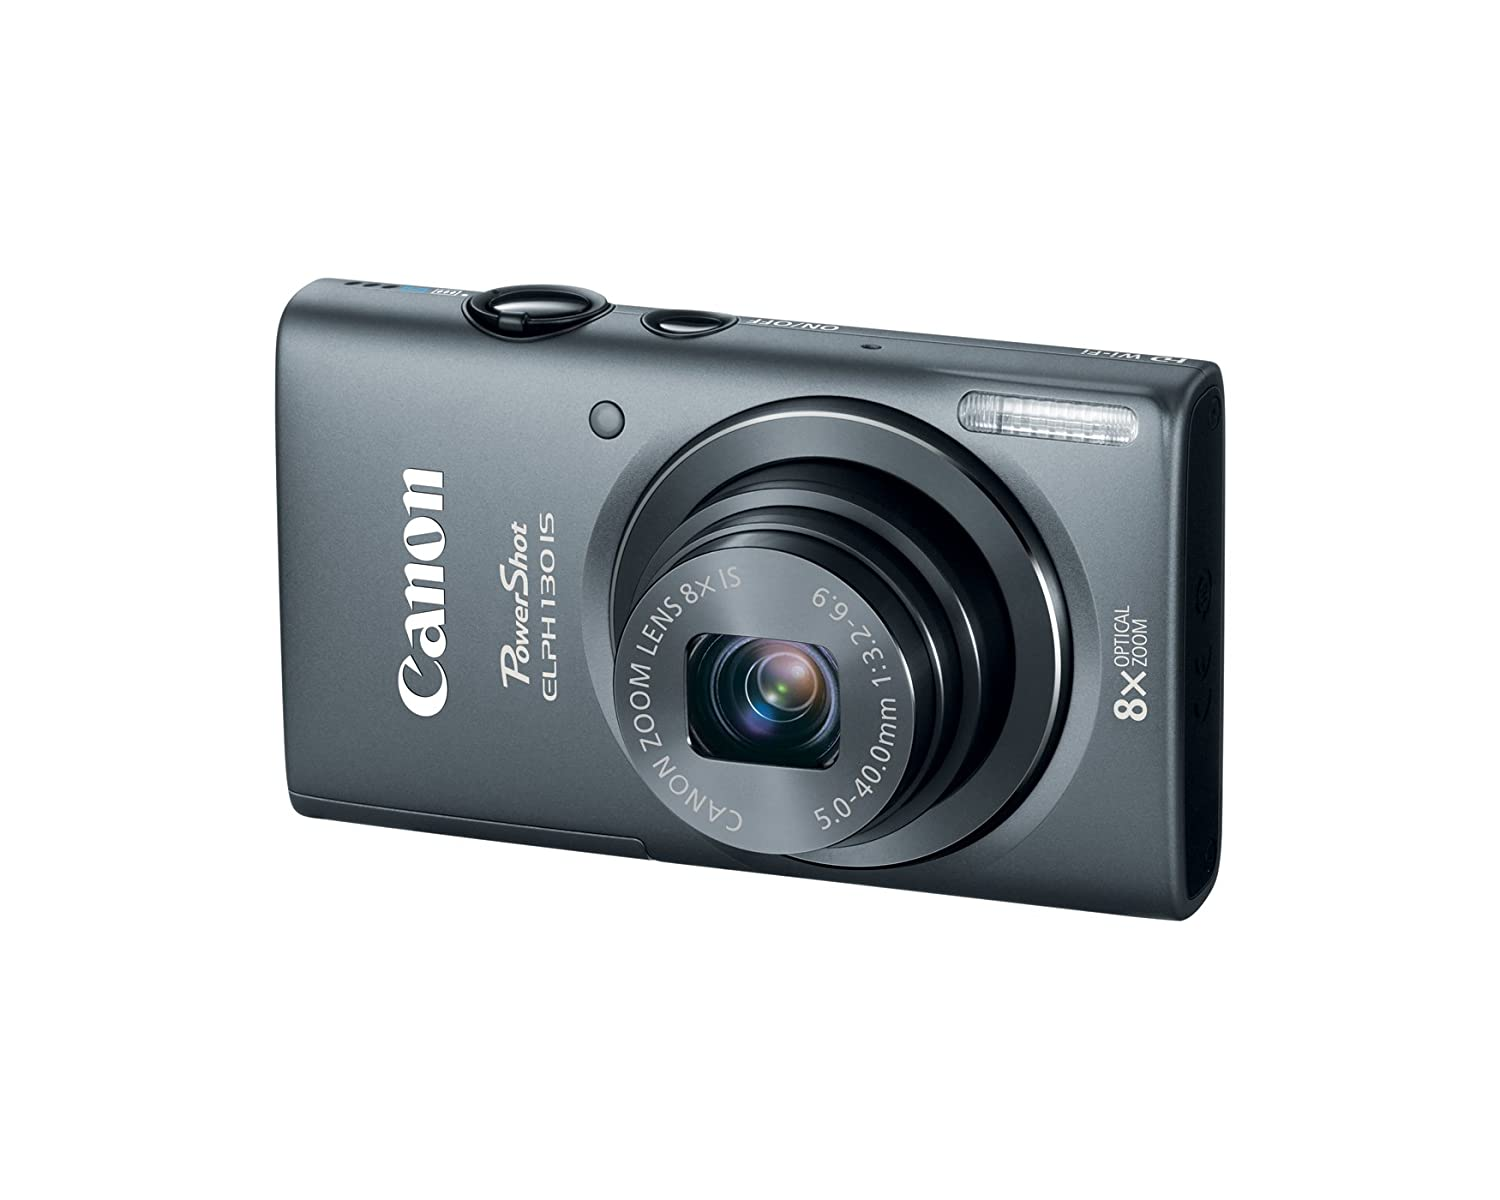 Amazon.com : Canon PowerShot ELPH 130 IS 16.0 MP Digital Camera ...